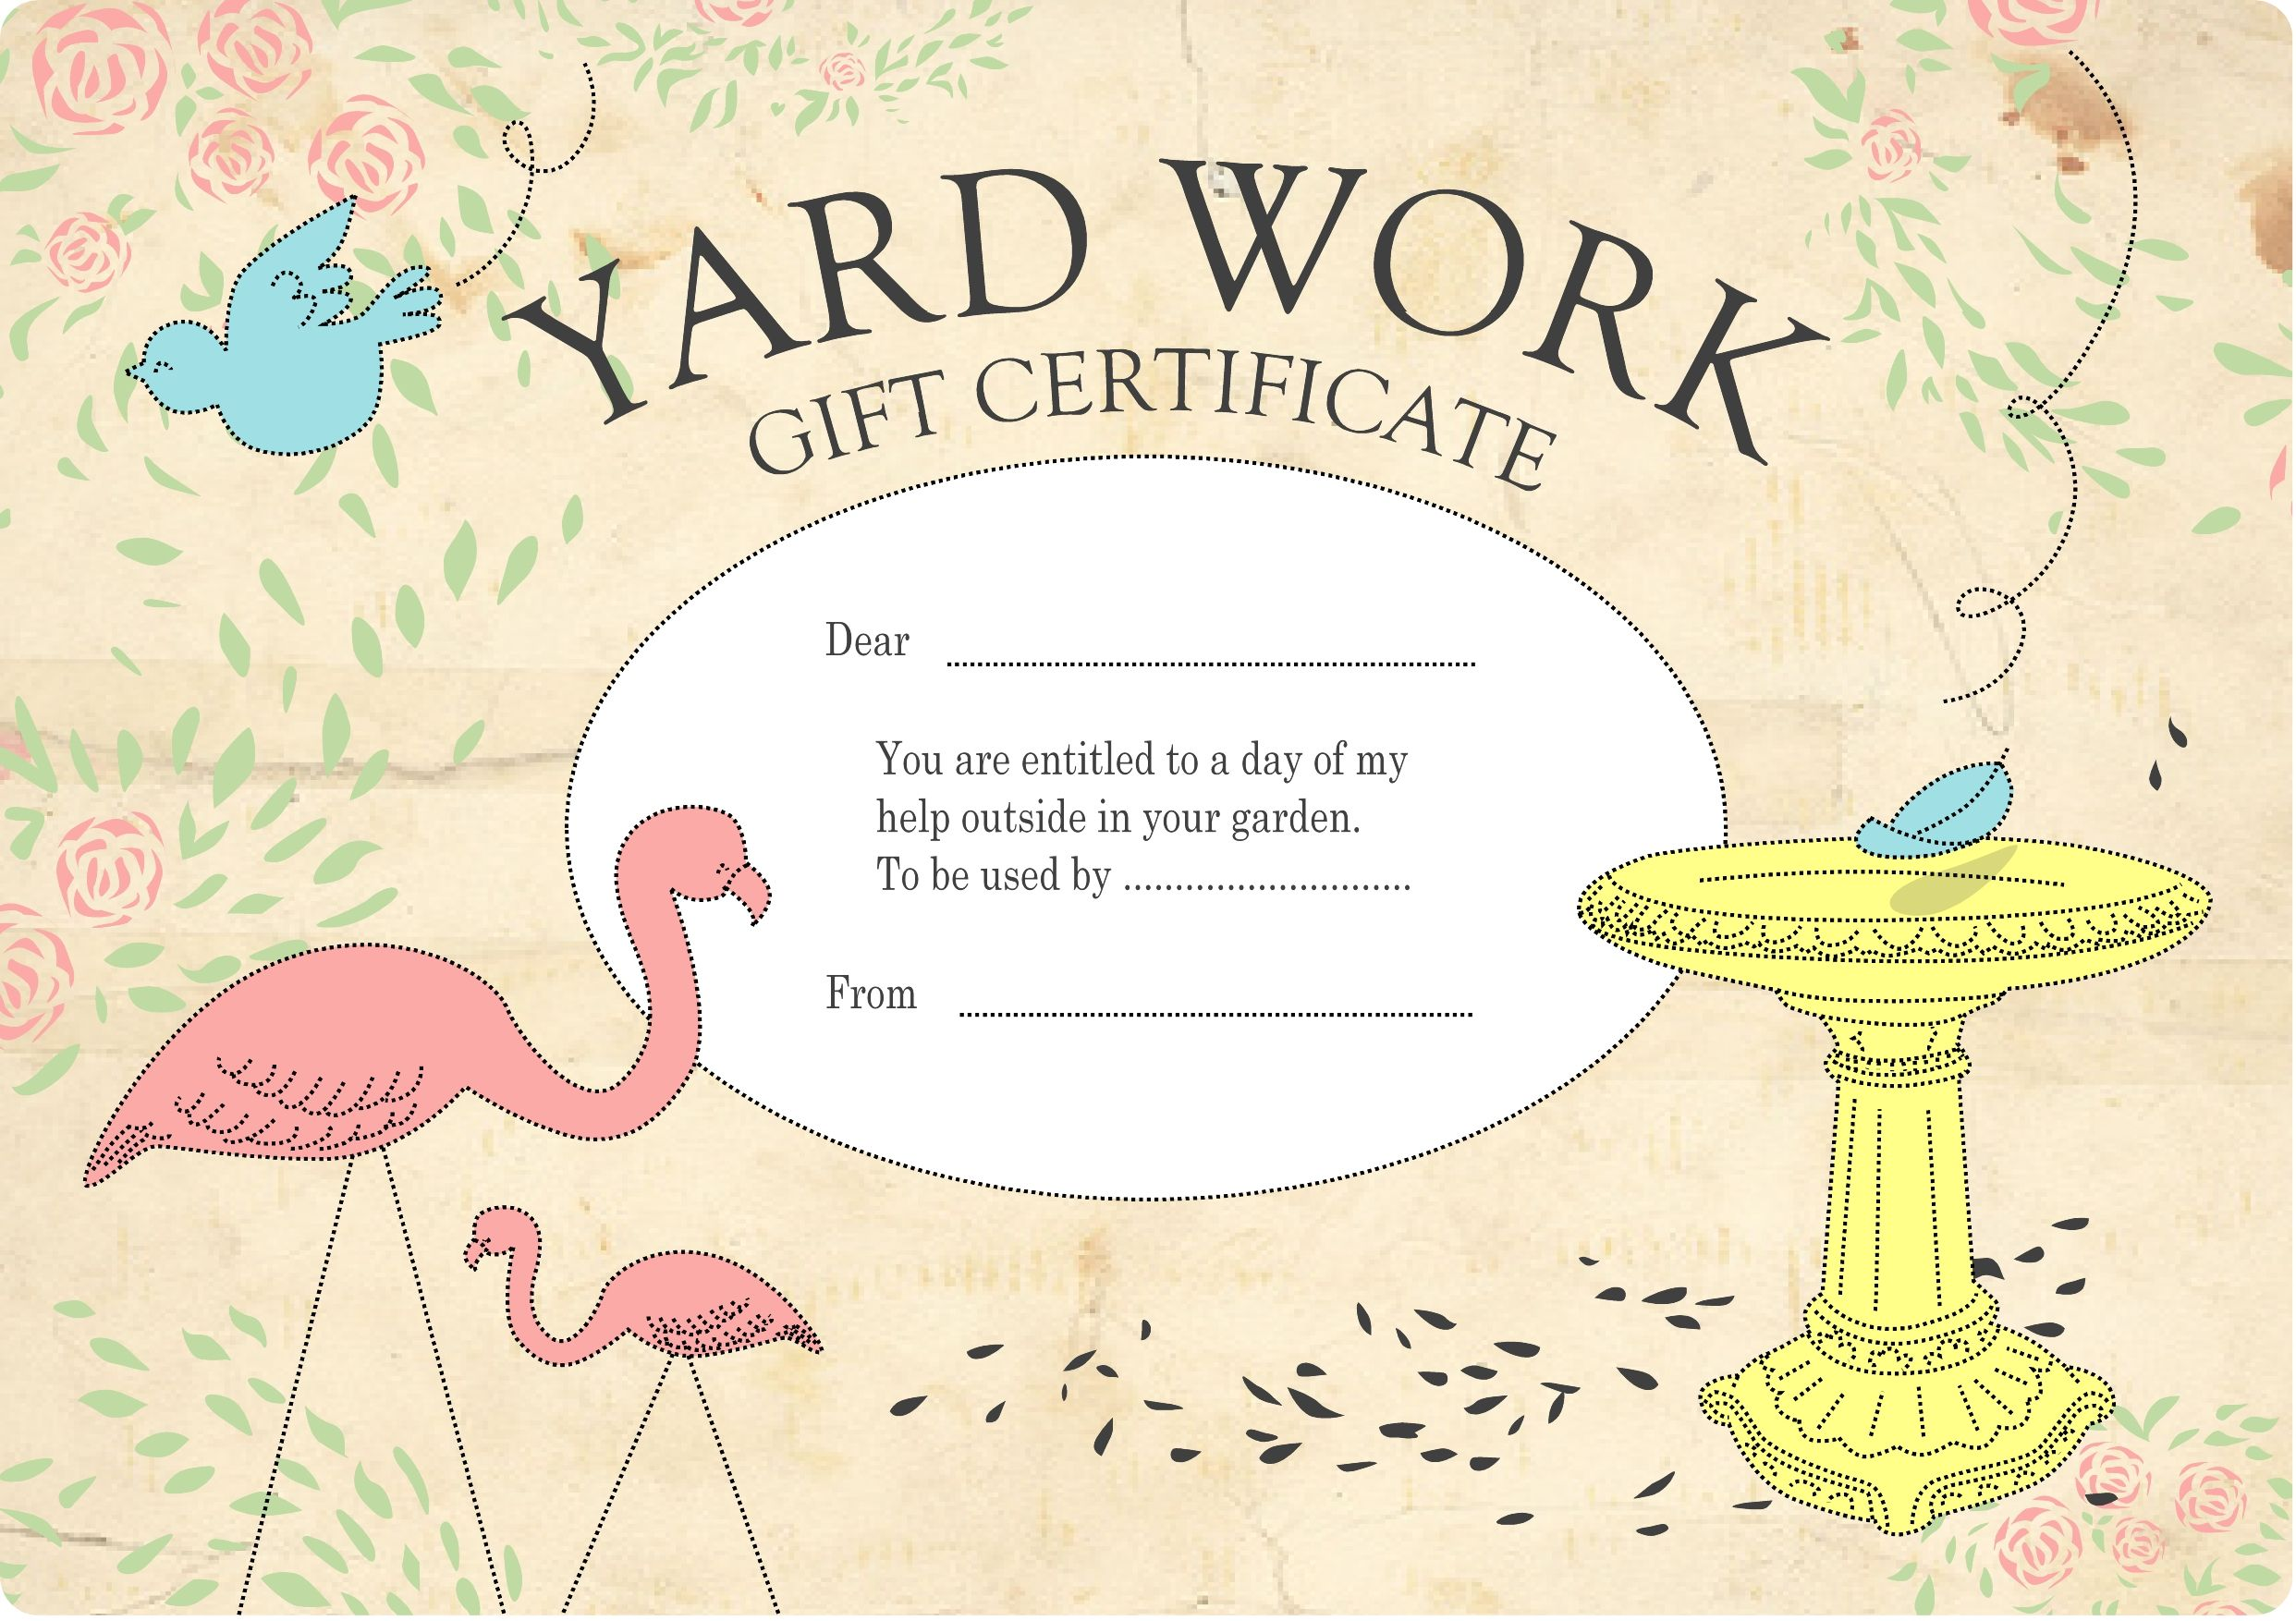 Homemade gift certificate for helping out in the garden gardening homemade gift certificate for helping out in the garden negle Image collections